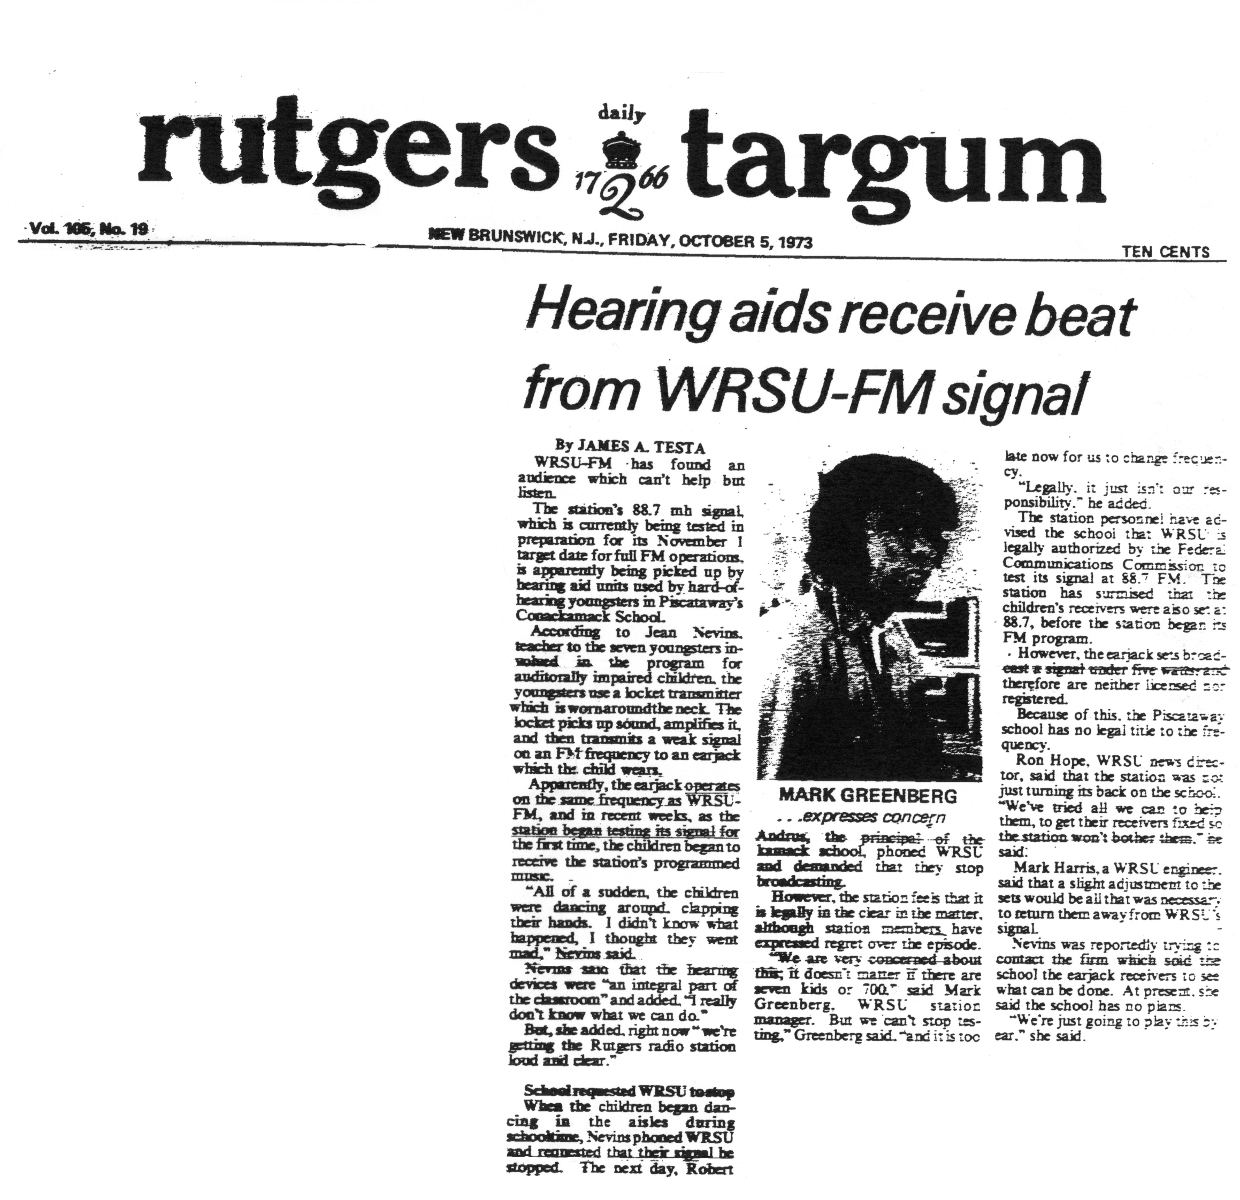 1973 - One of the many stories getting FM running - Interference was a major problem back then